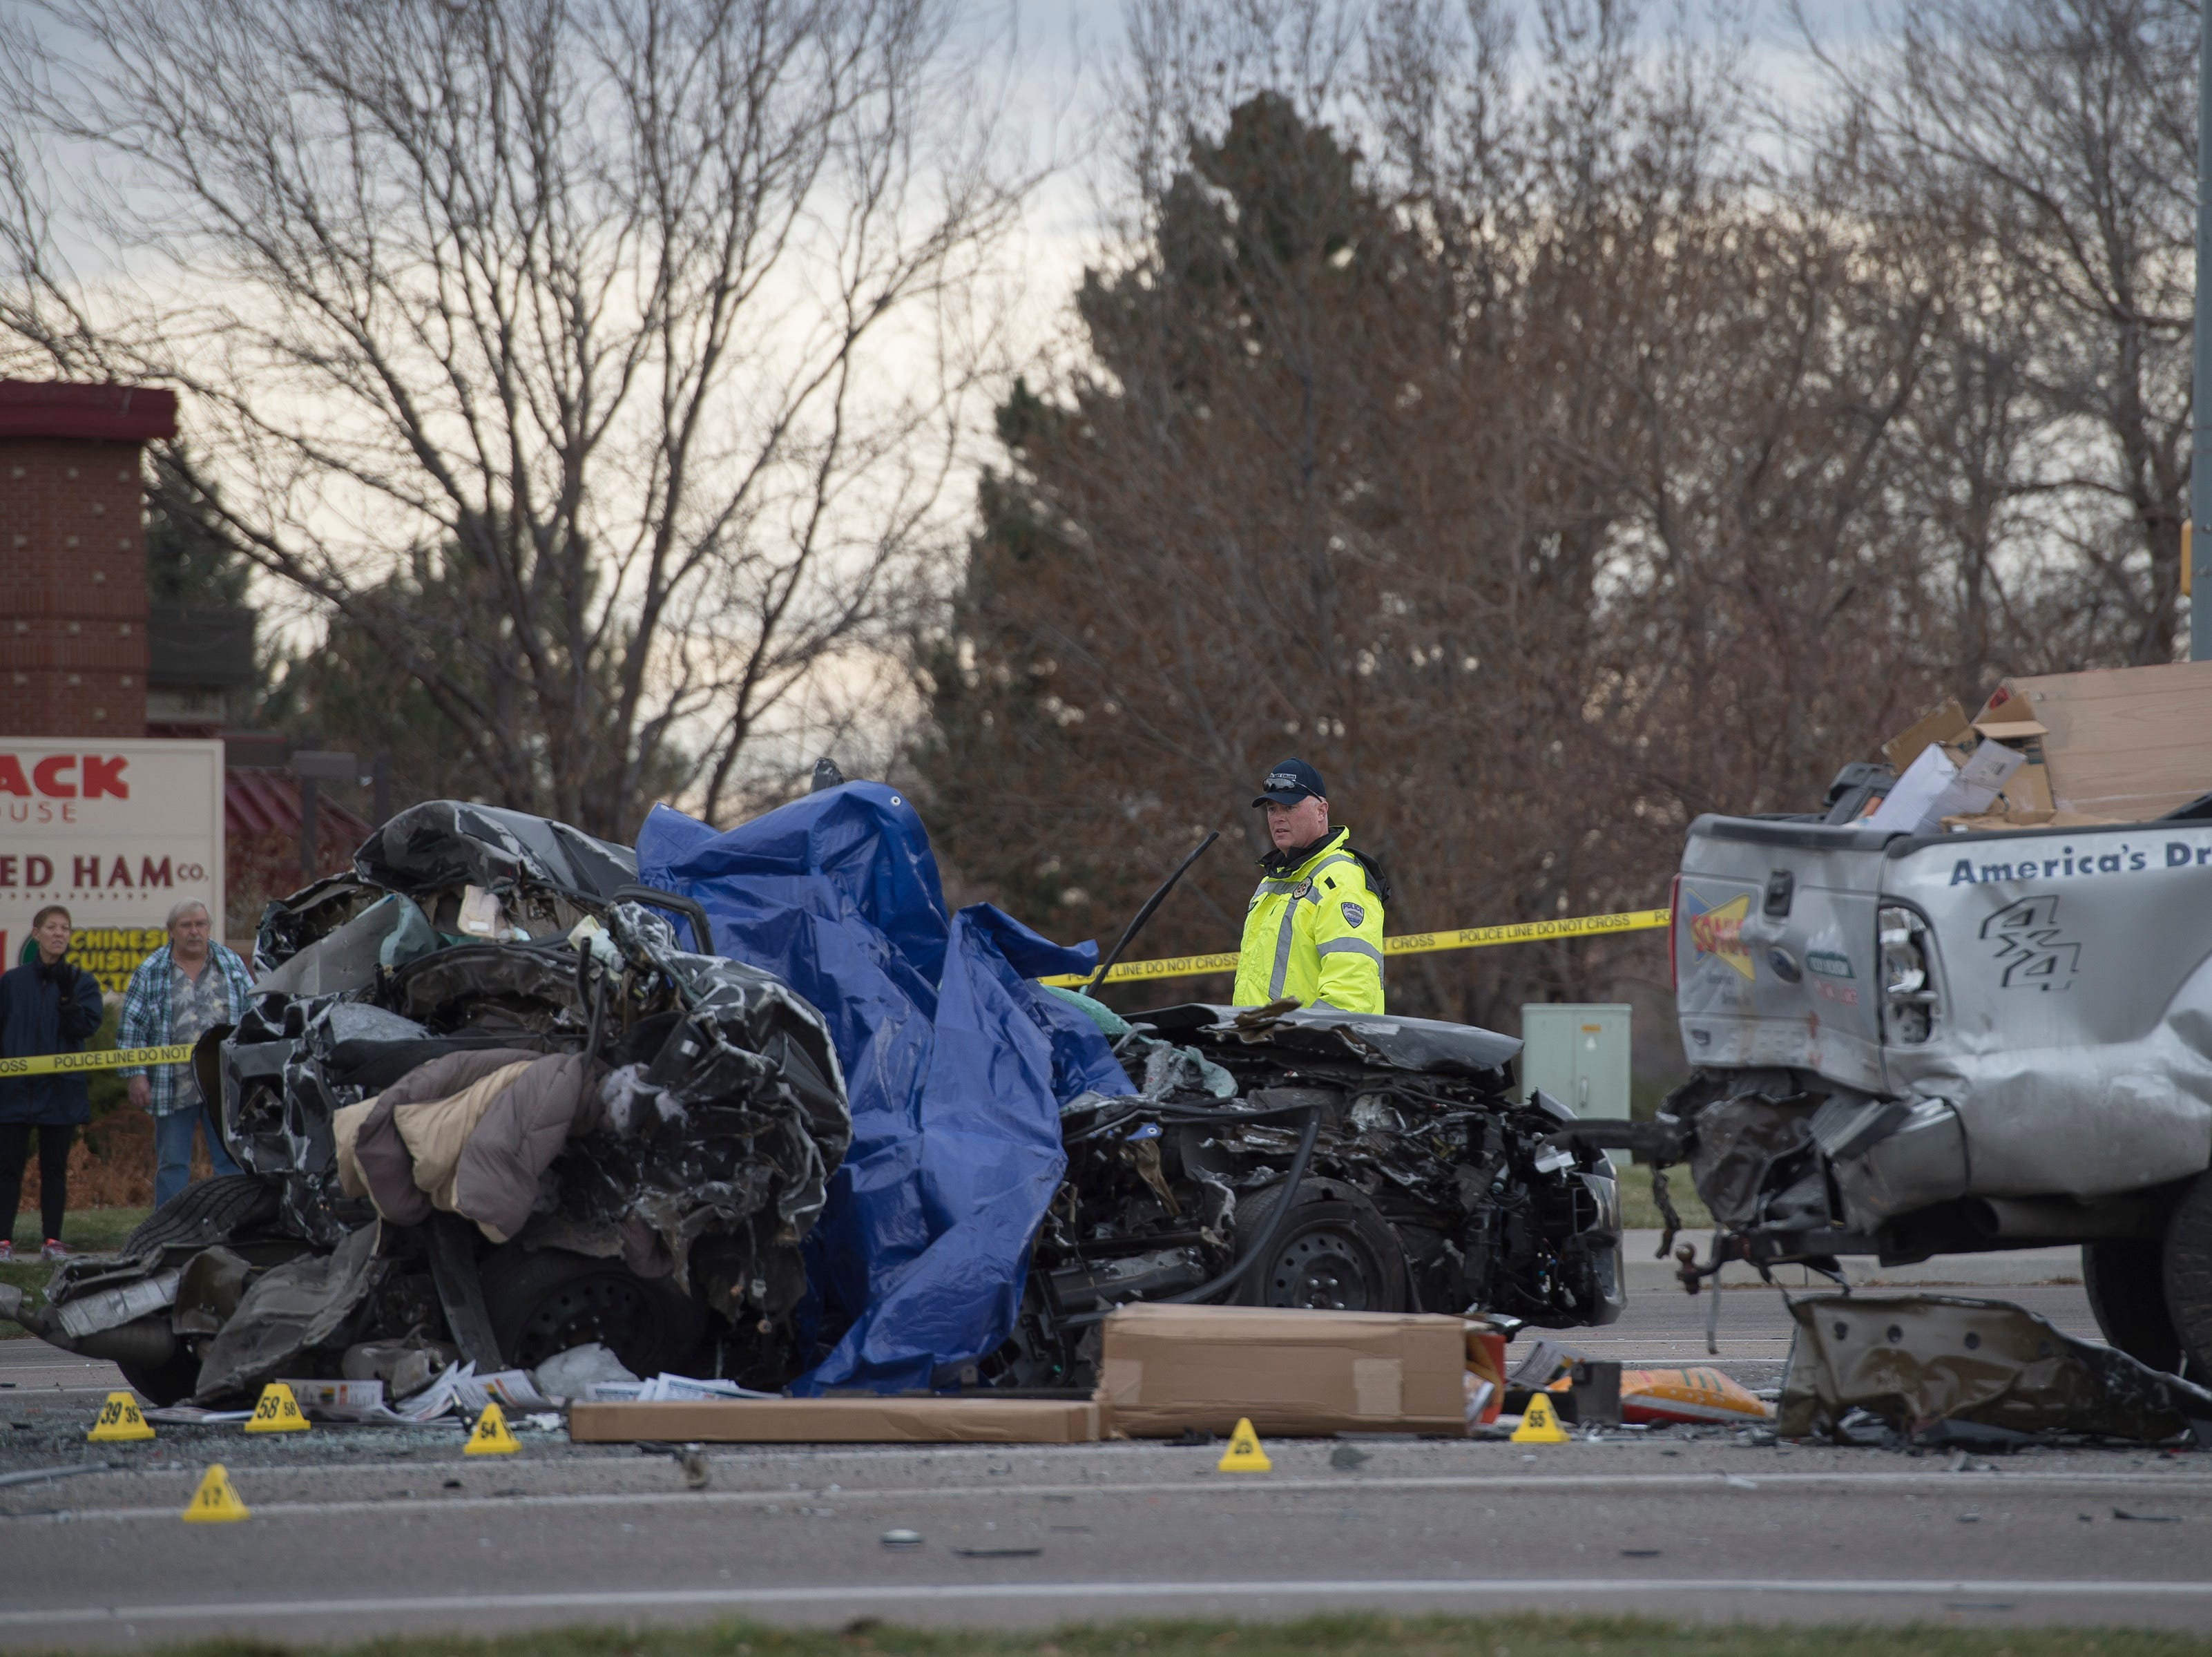 Police work the scene of a crash with multiple fatalities and involving at least four vehicles on Thursday, Nov. 22, 2018, at the intersection of East Harmony Road and East Boardwalk Drive in Fort Collins, Colo.